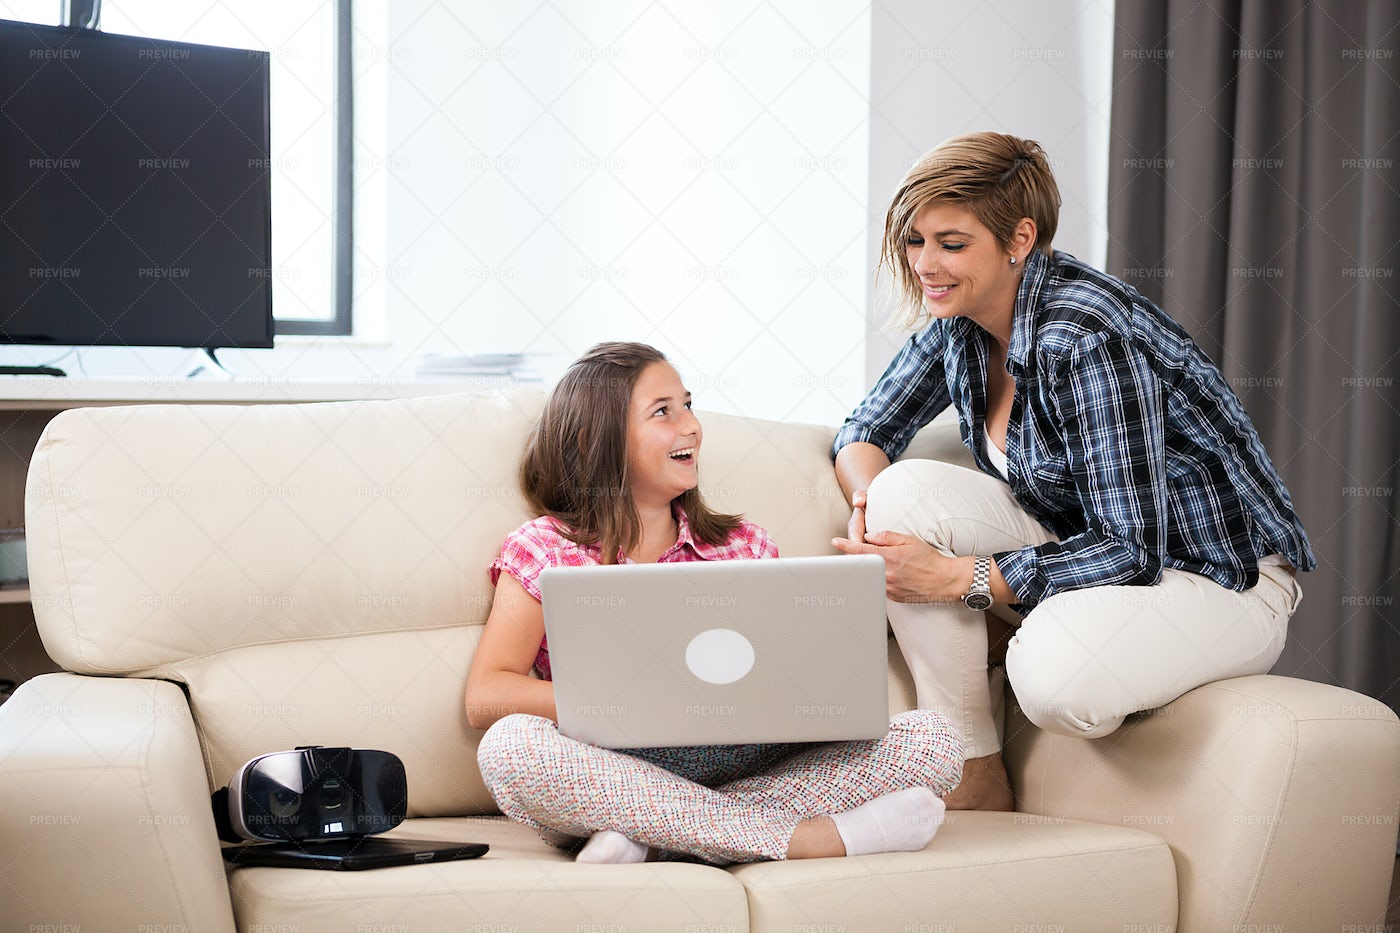 Girl And Mother With A Laptop: Stock Photos